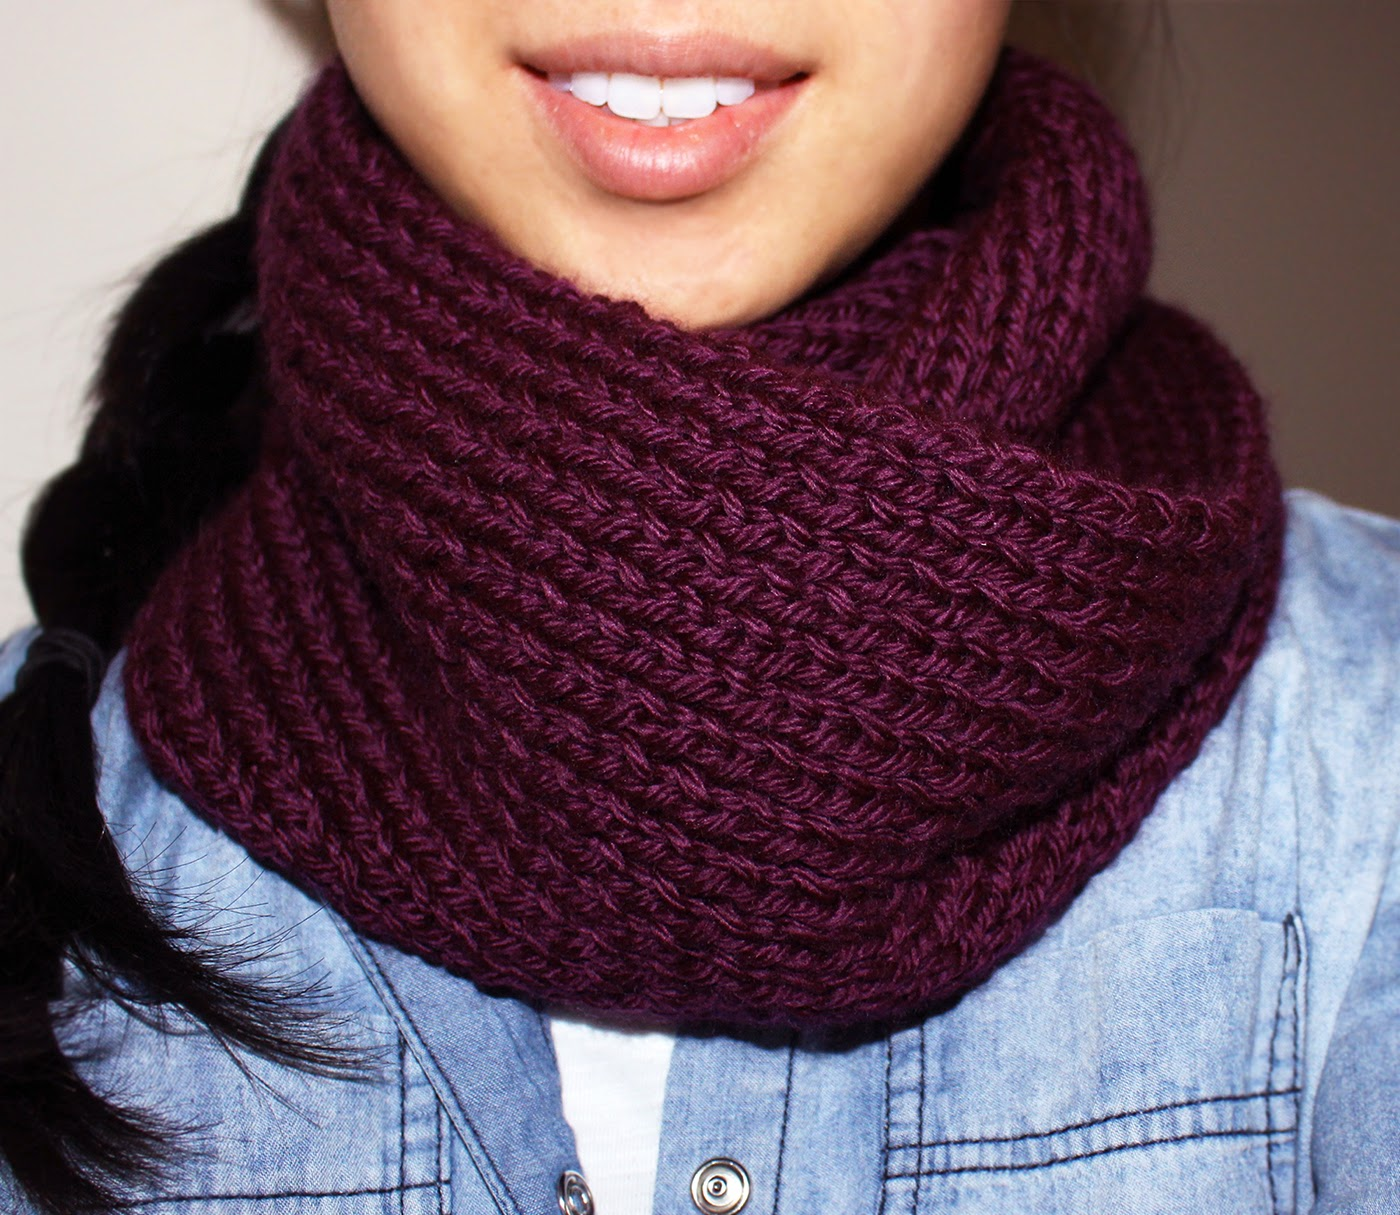 Easy Knitting Stitches Scarves : Purllin: Acai Infinity Circle Scarf [free knitting pattern]